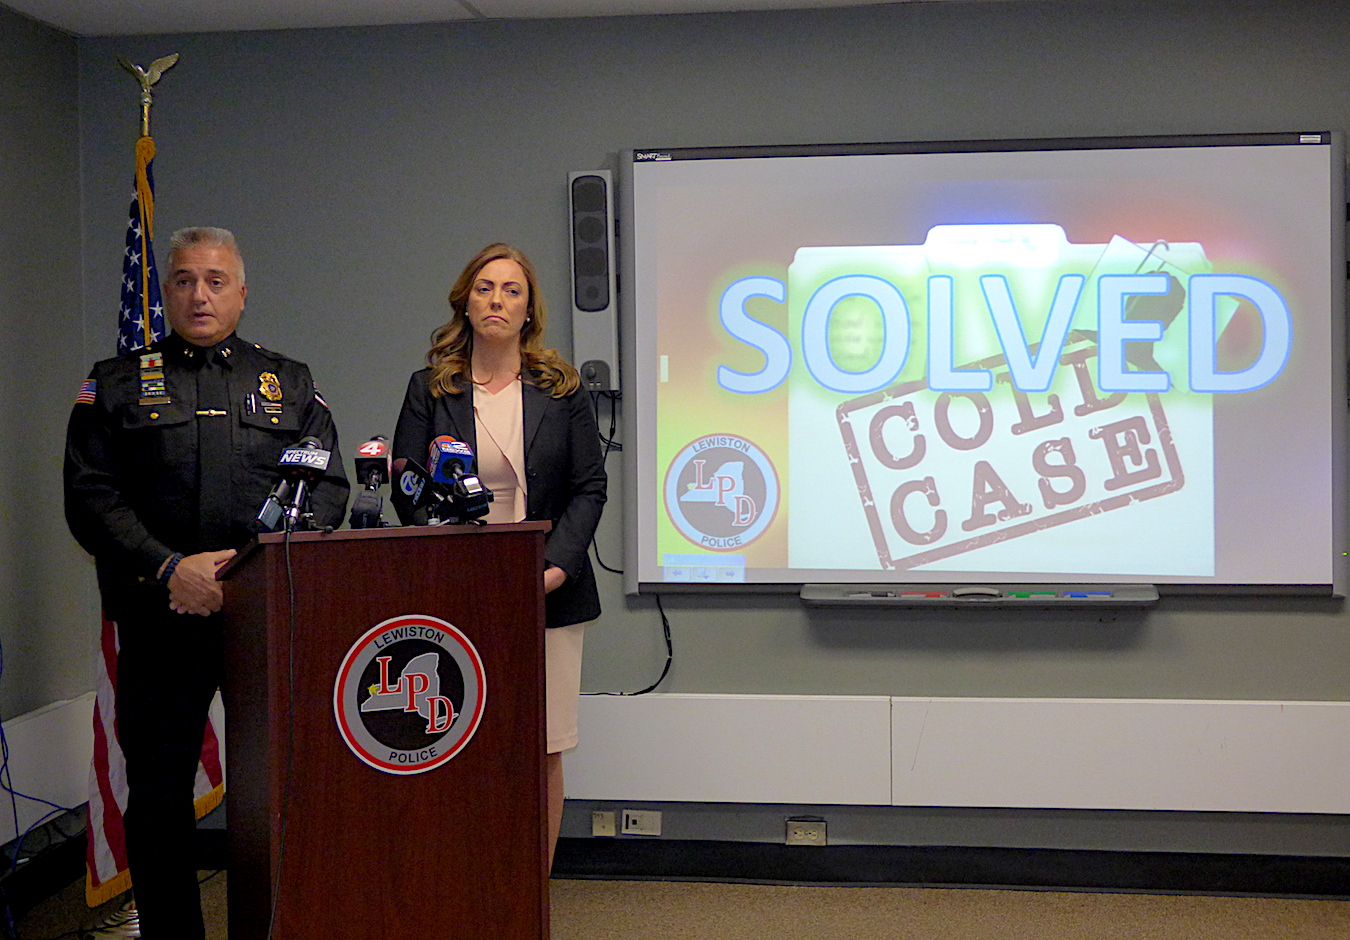 Lewiston Police Department Chief Frank Previte and Niagara County District Attorney Caroline Wojtaszek address the media.